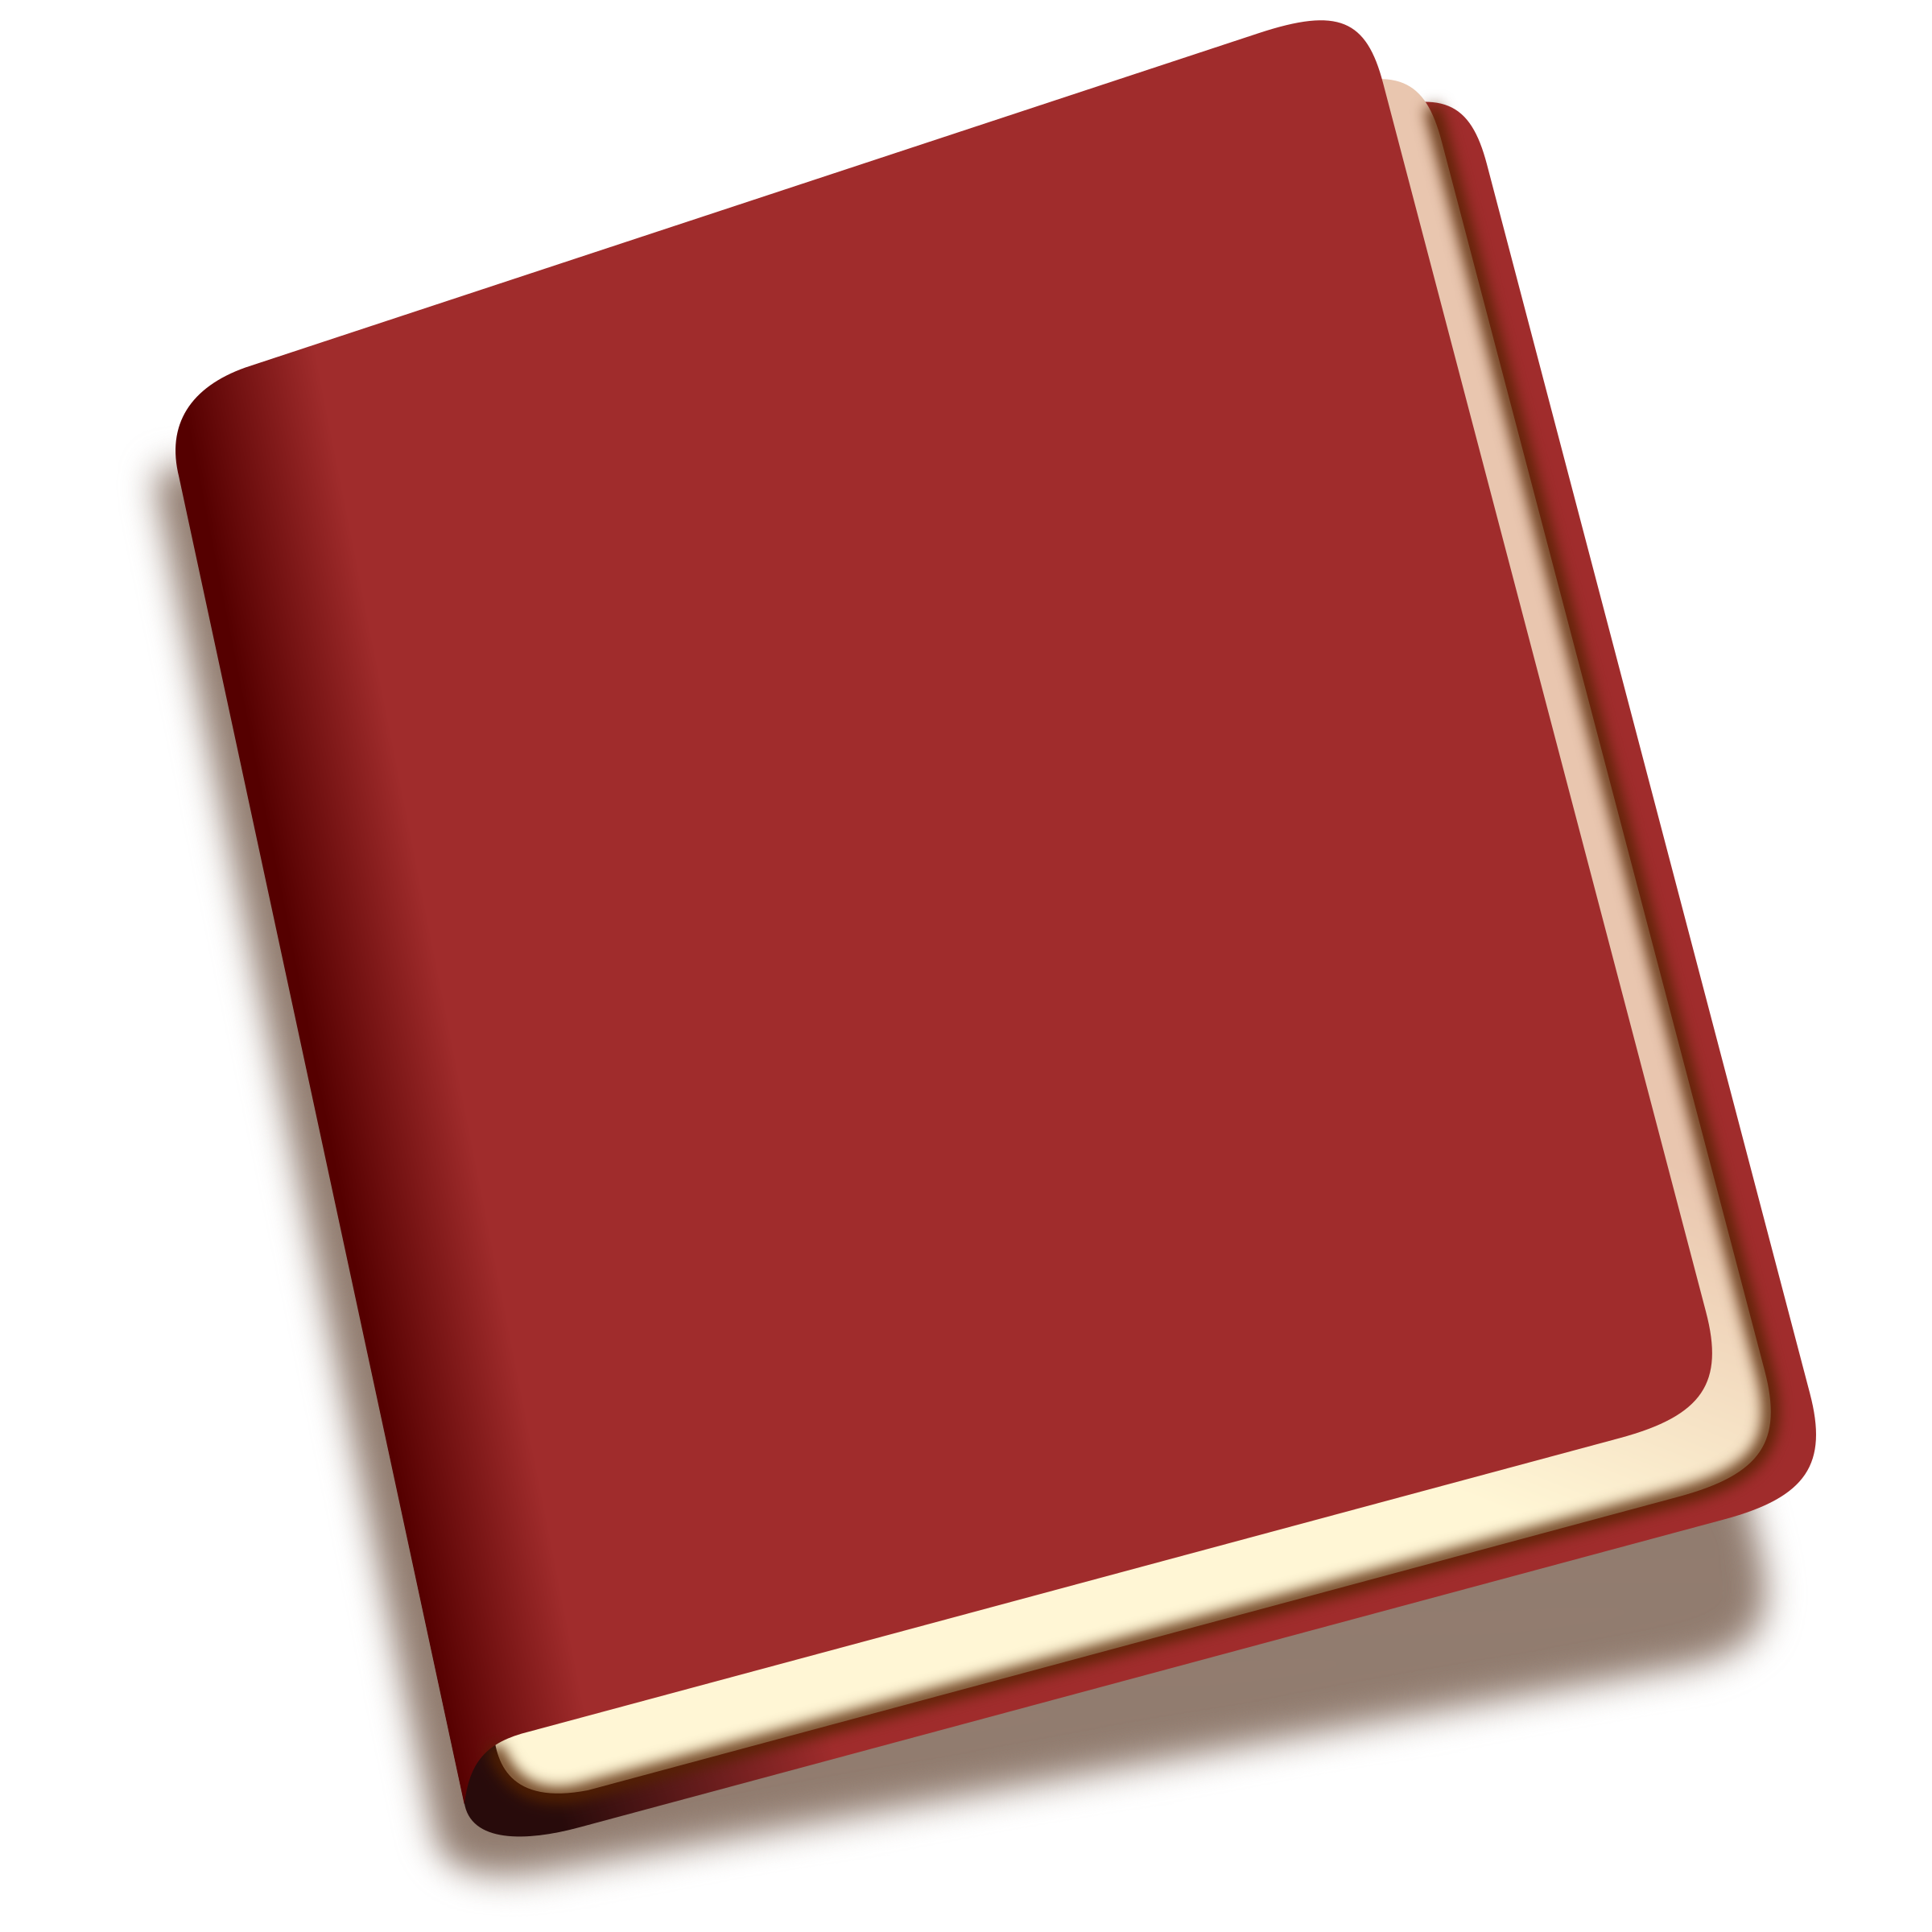 Book PNG - 23989